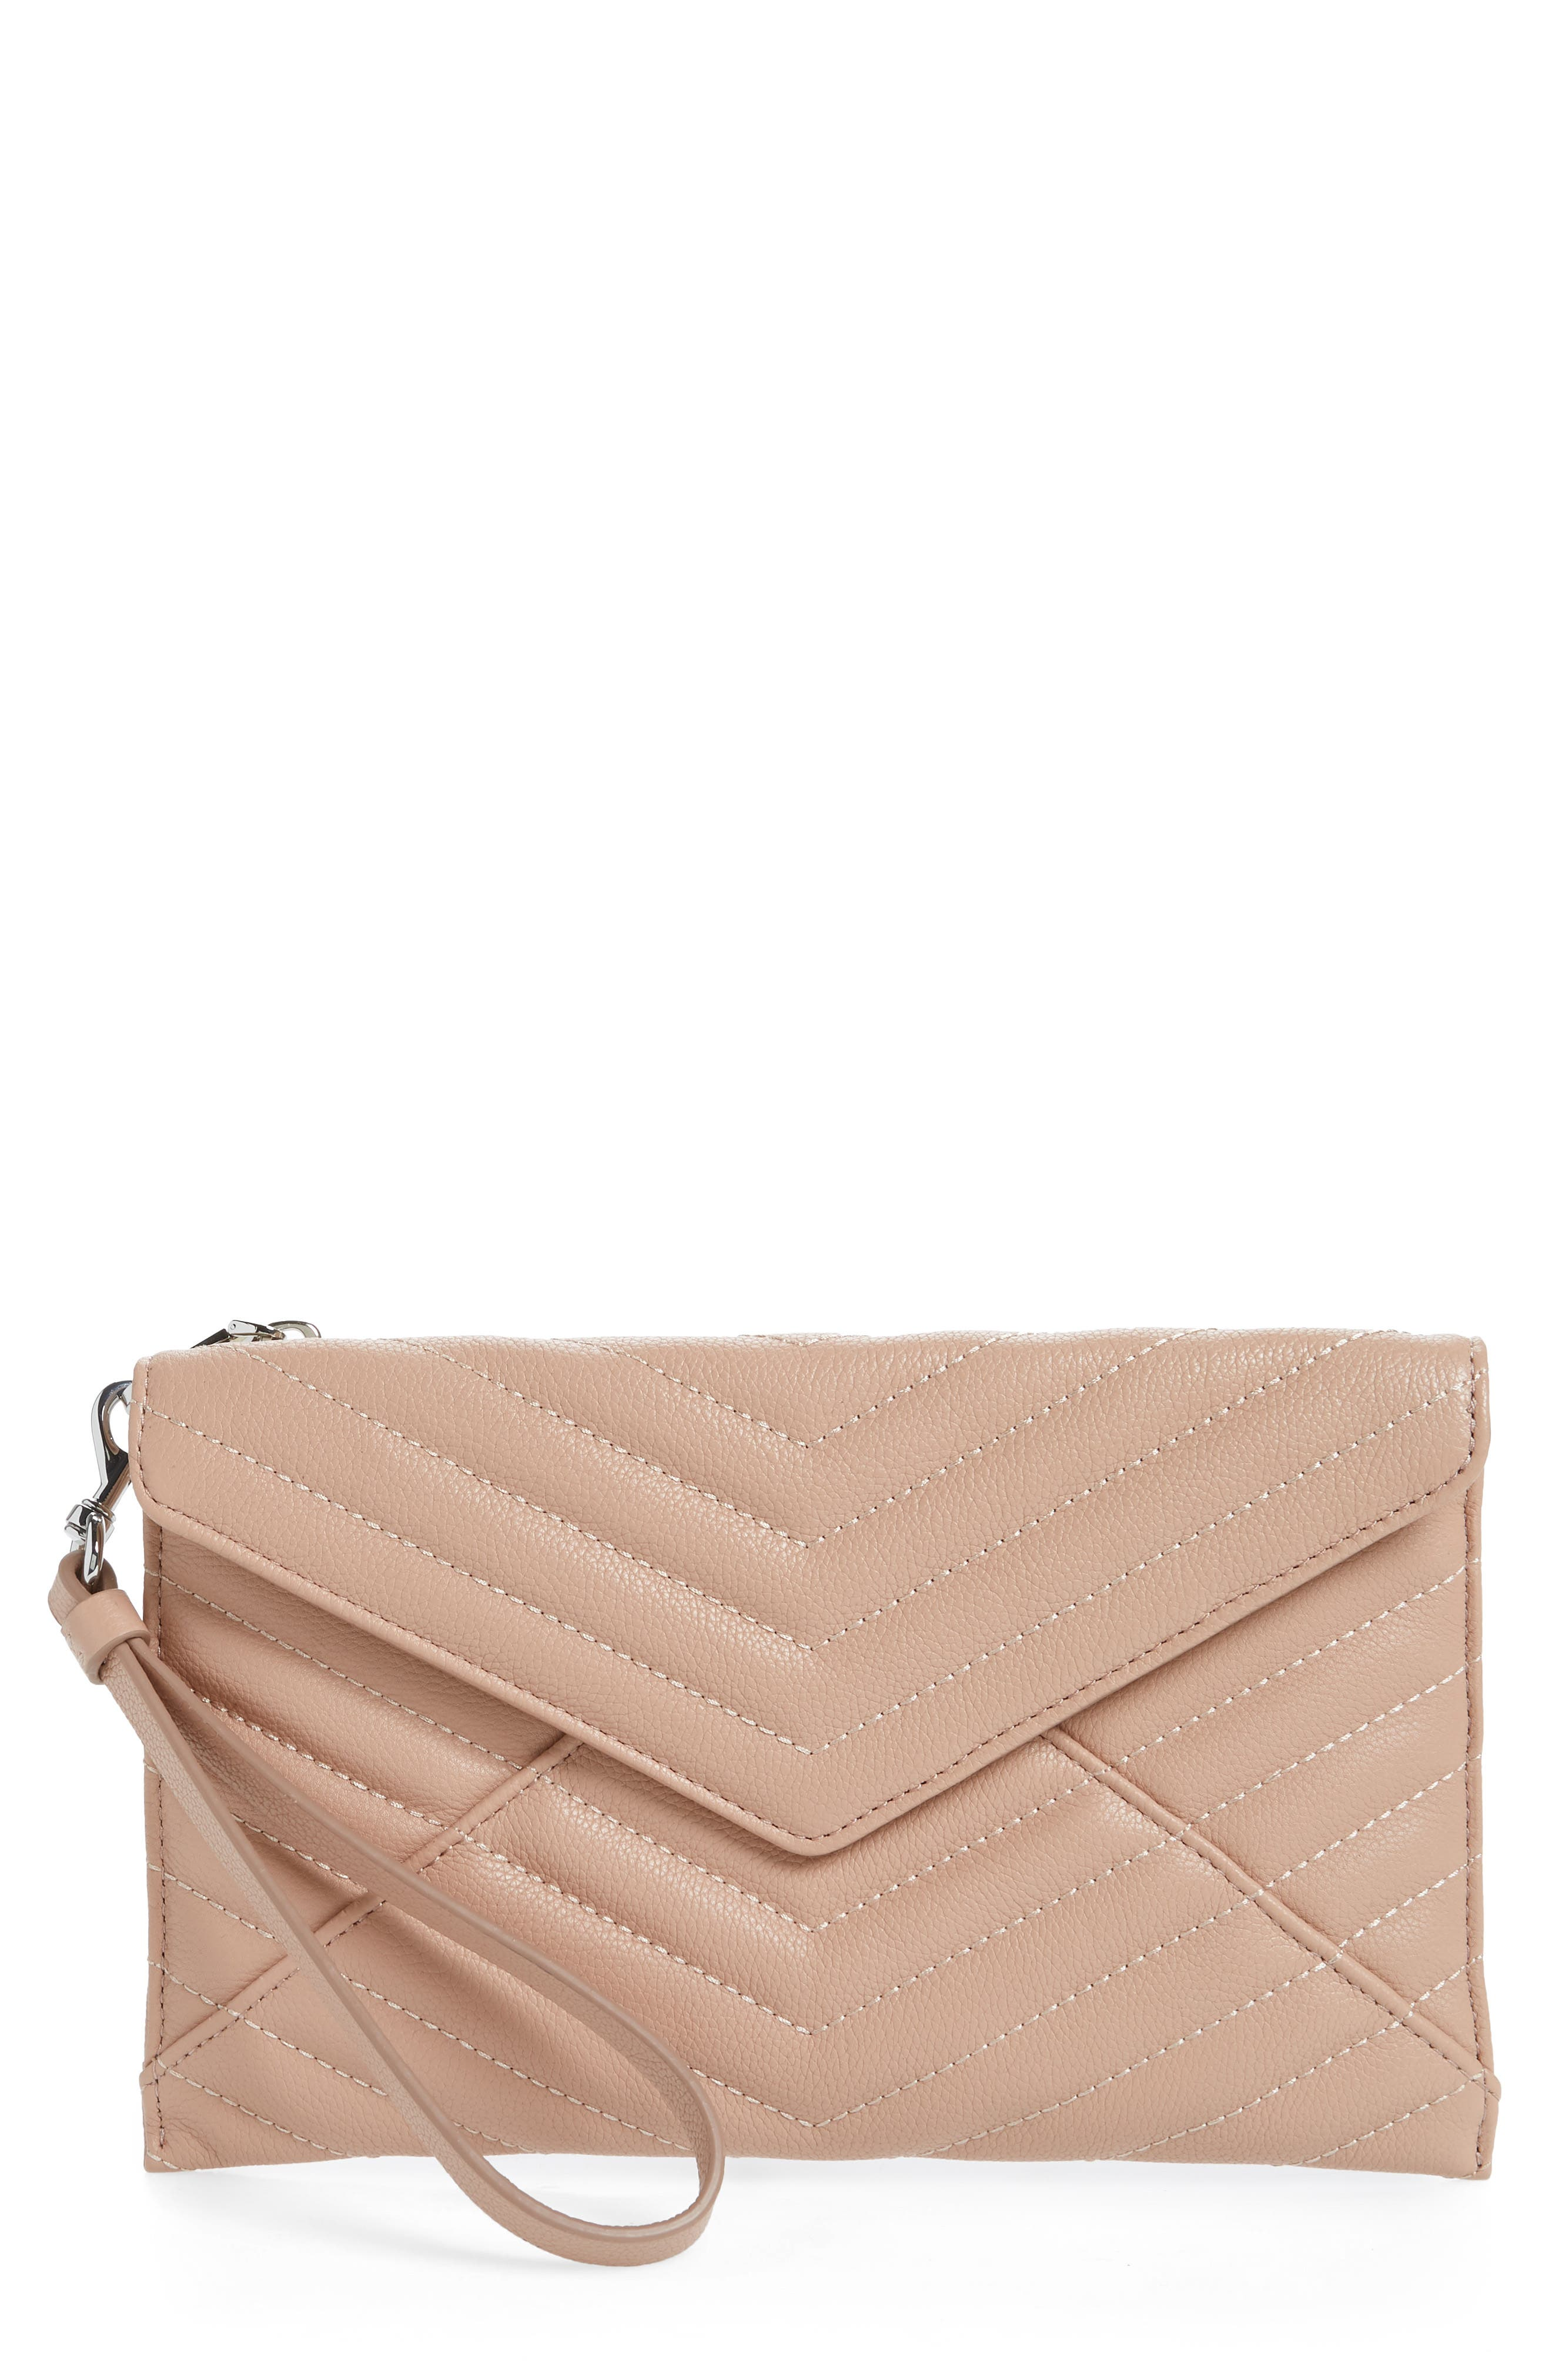 Leo Quilted Leather Clutch - Beige in Doe